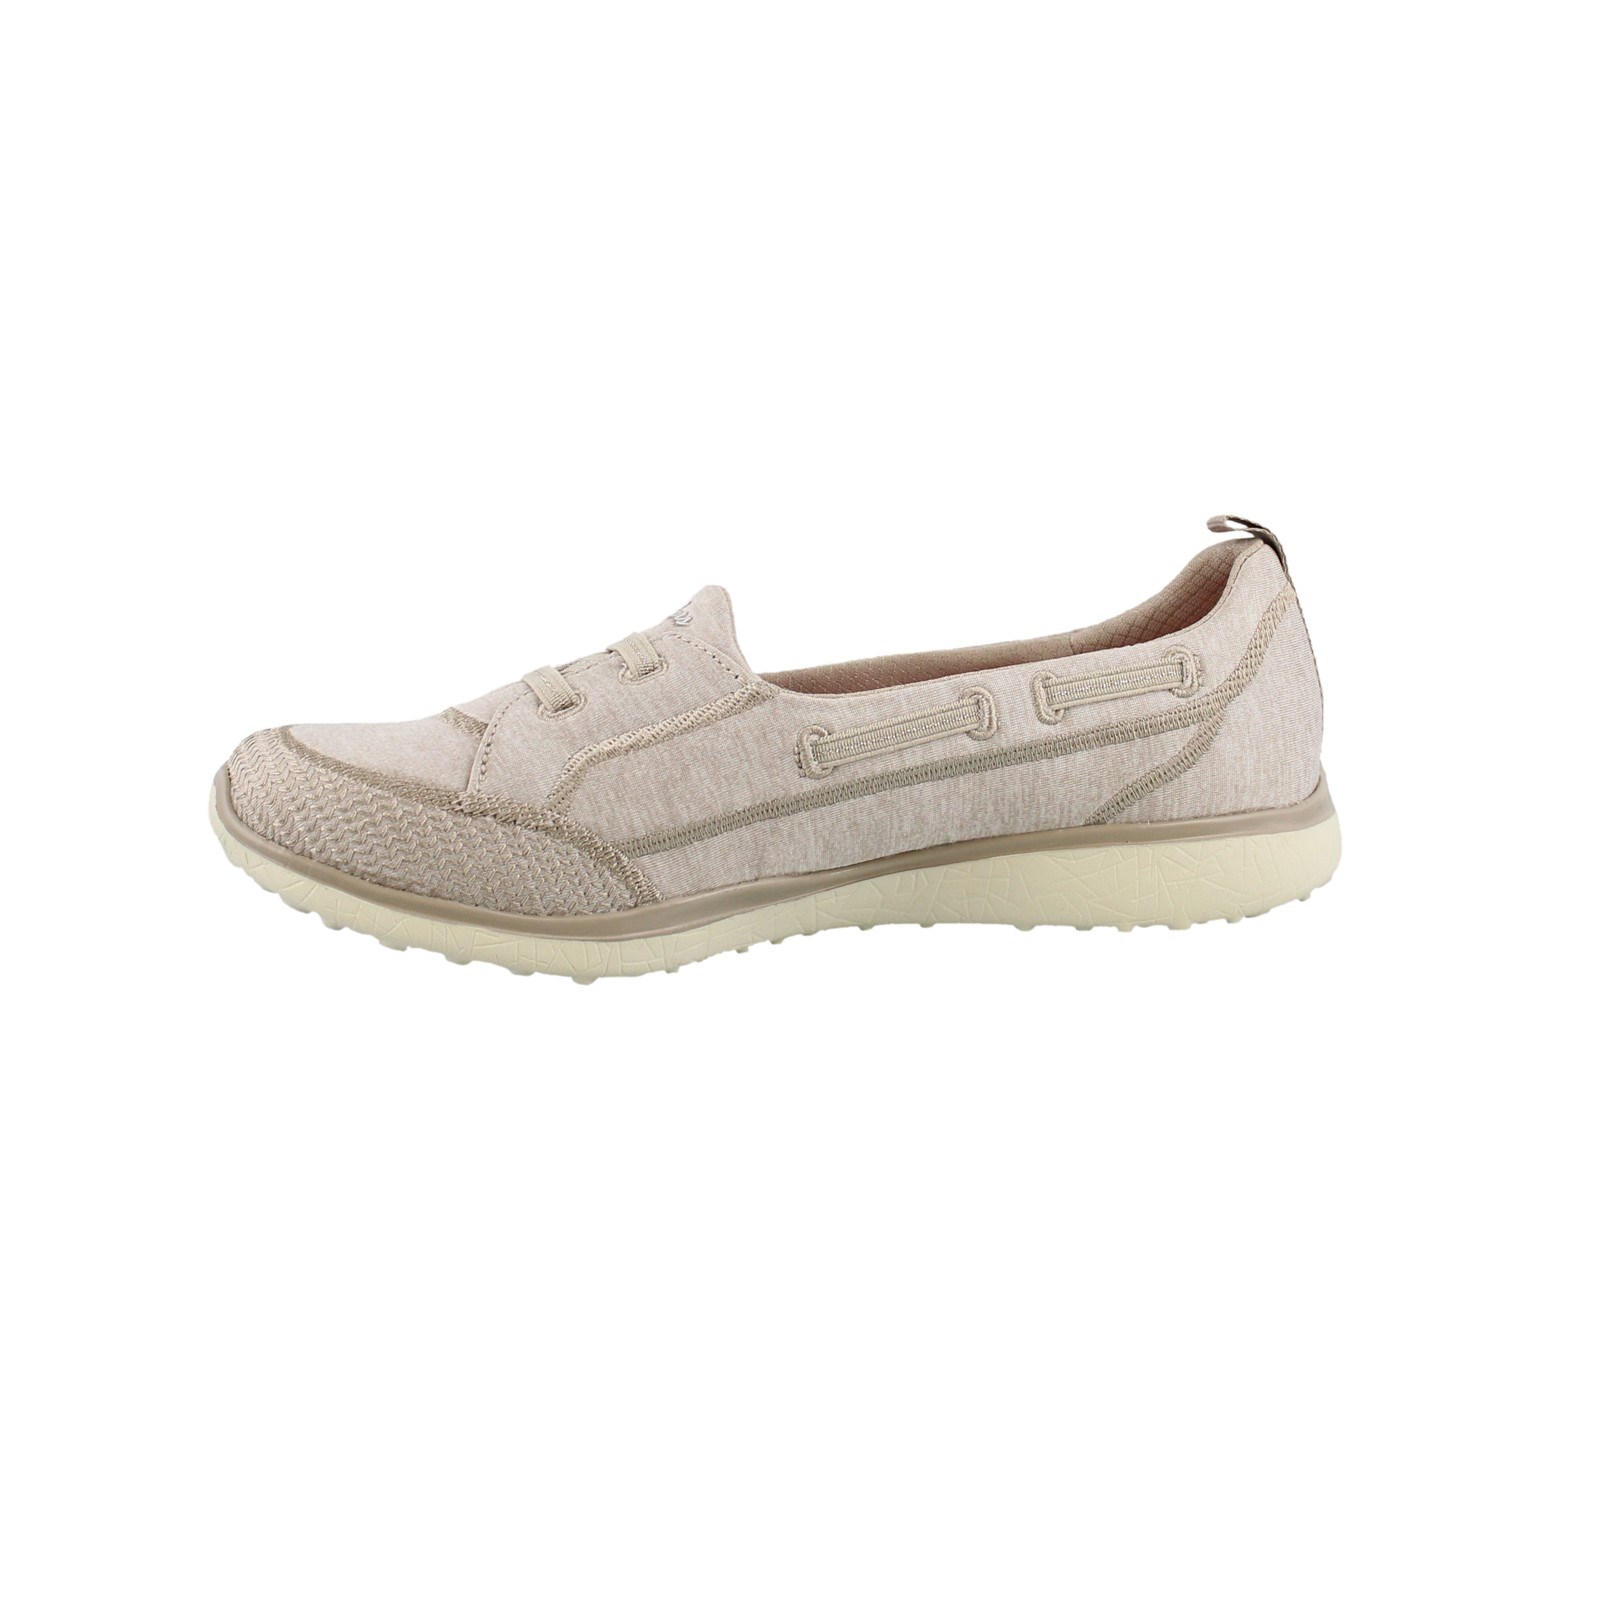 66b88584f980 Next. add to favorites. Women s Skechers